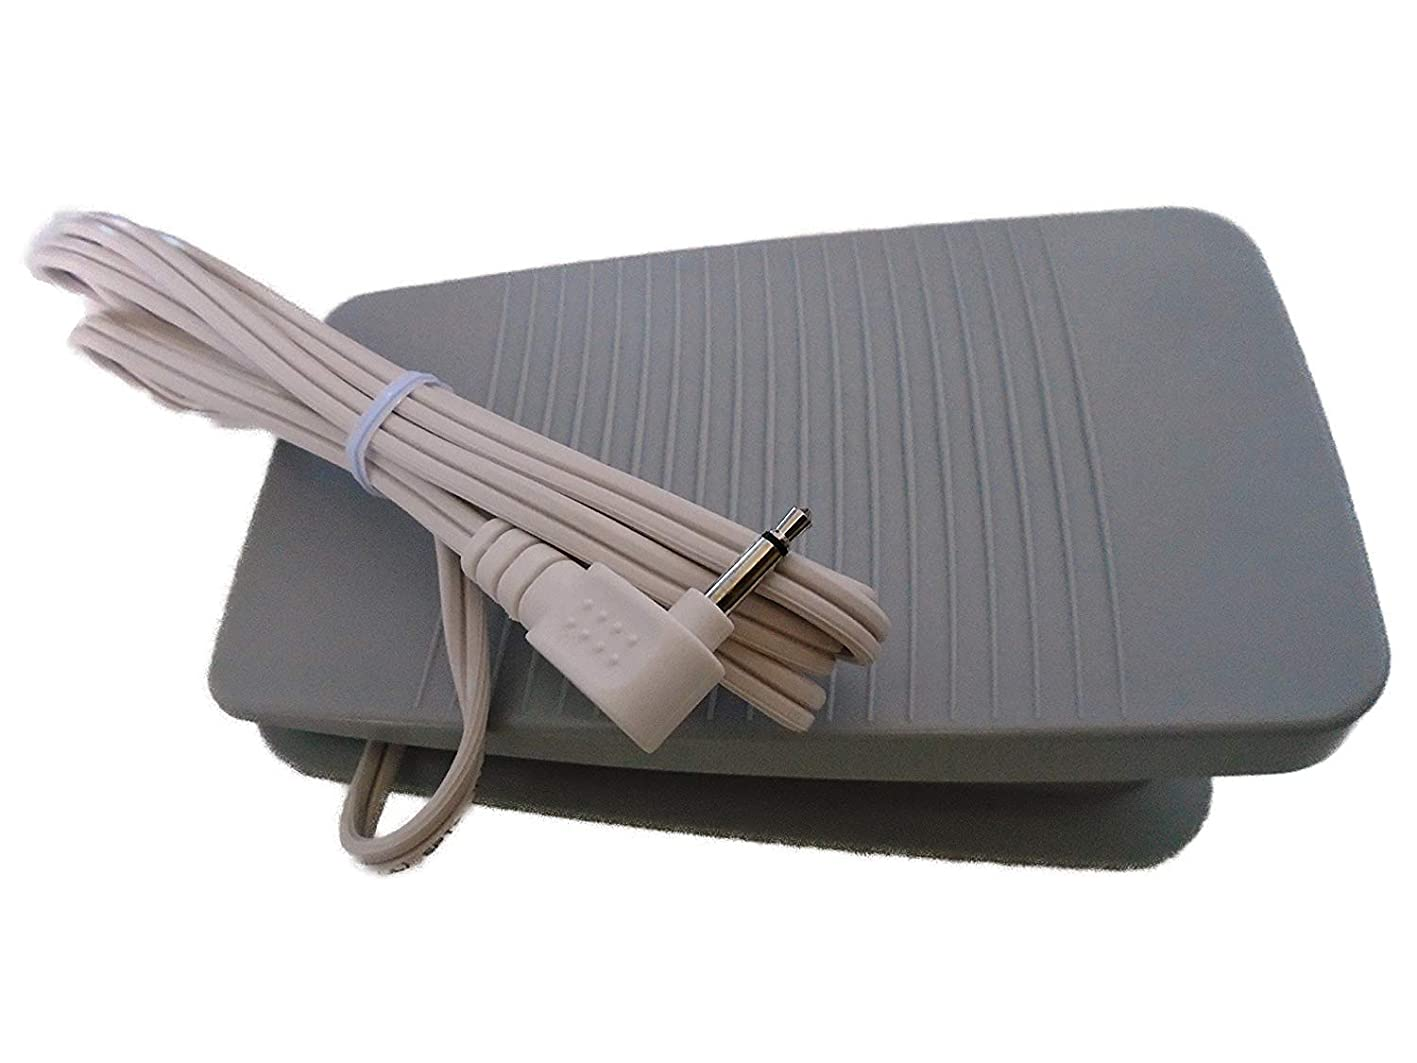 NGOSEW FOOT CONTROL PEDAL works with BROTHER SE350 SE400 SQ900 XR4040 XR6600 XR7700 XR9000 # XC8816021 cfyinqwreit127